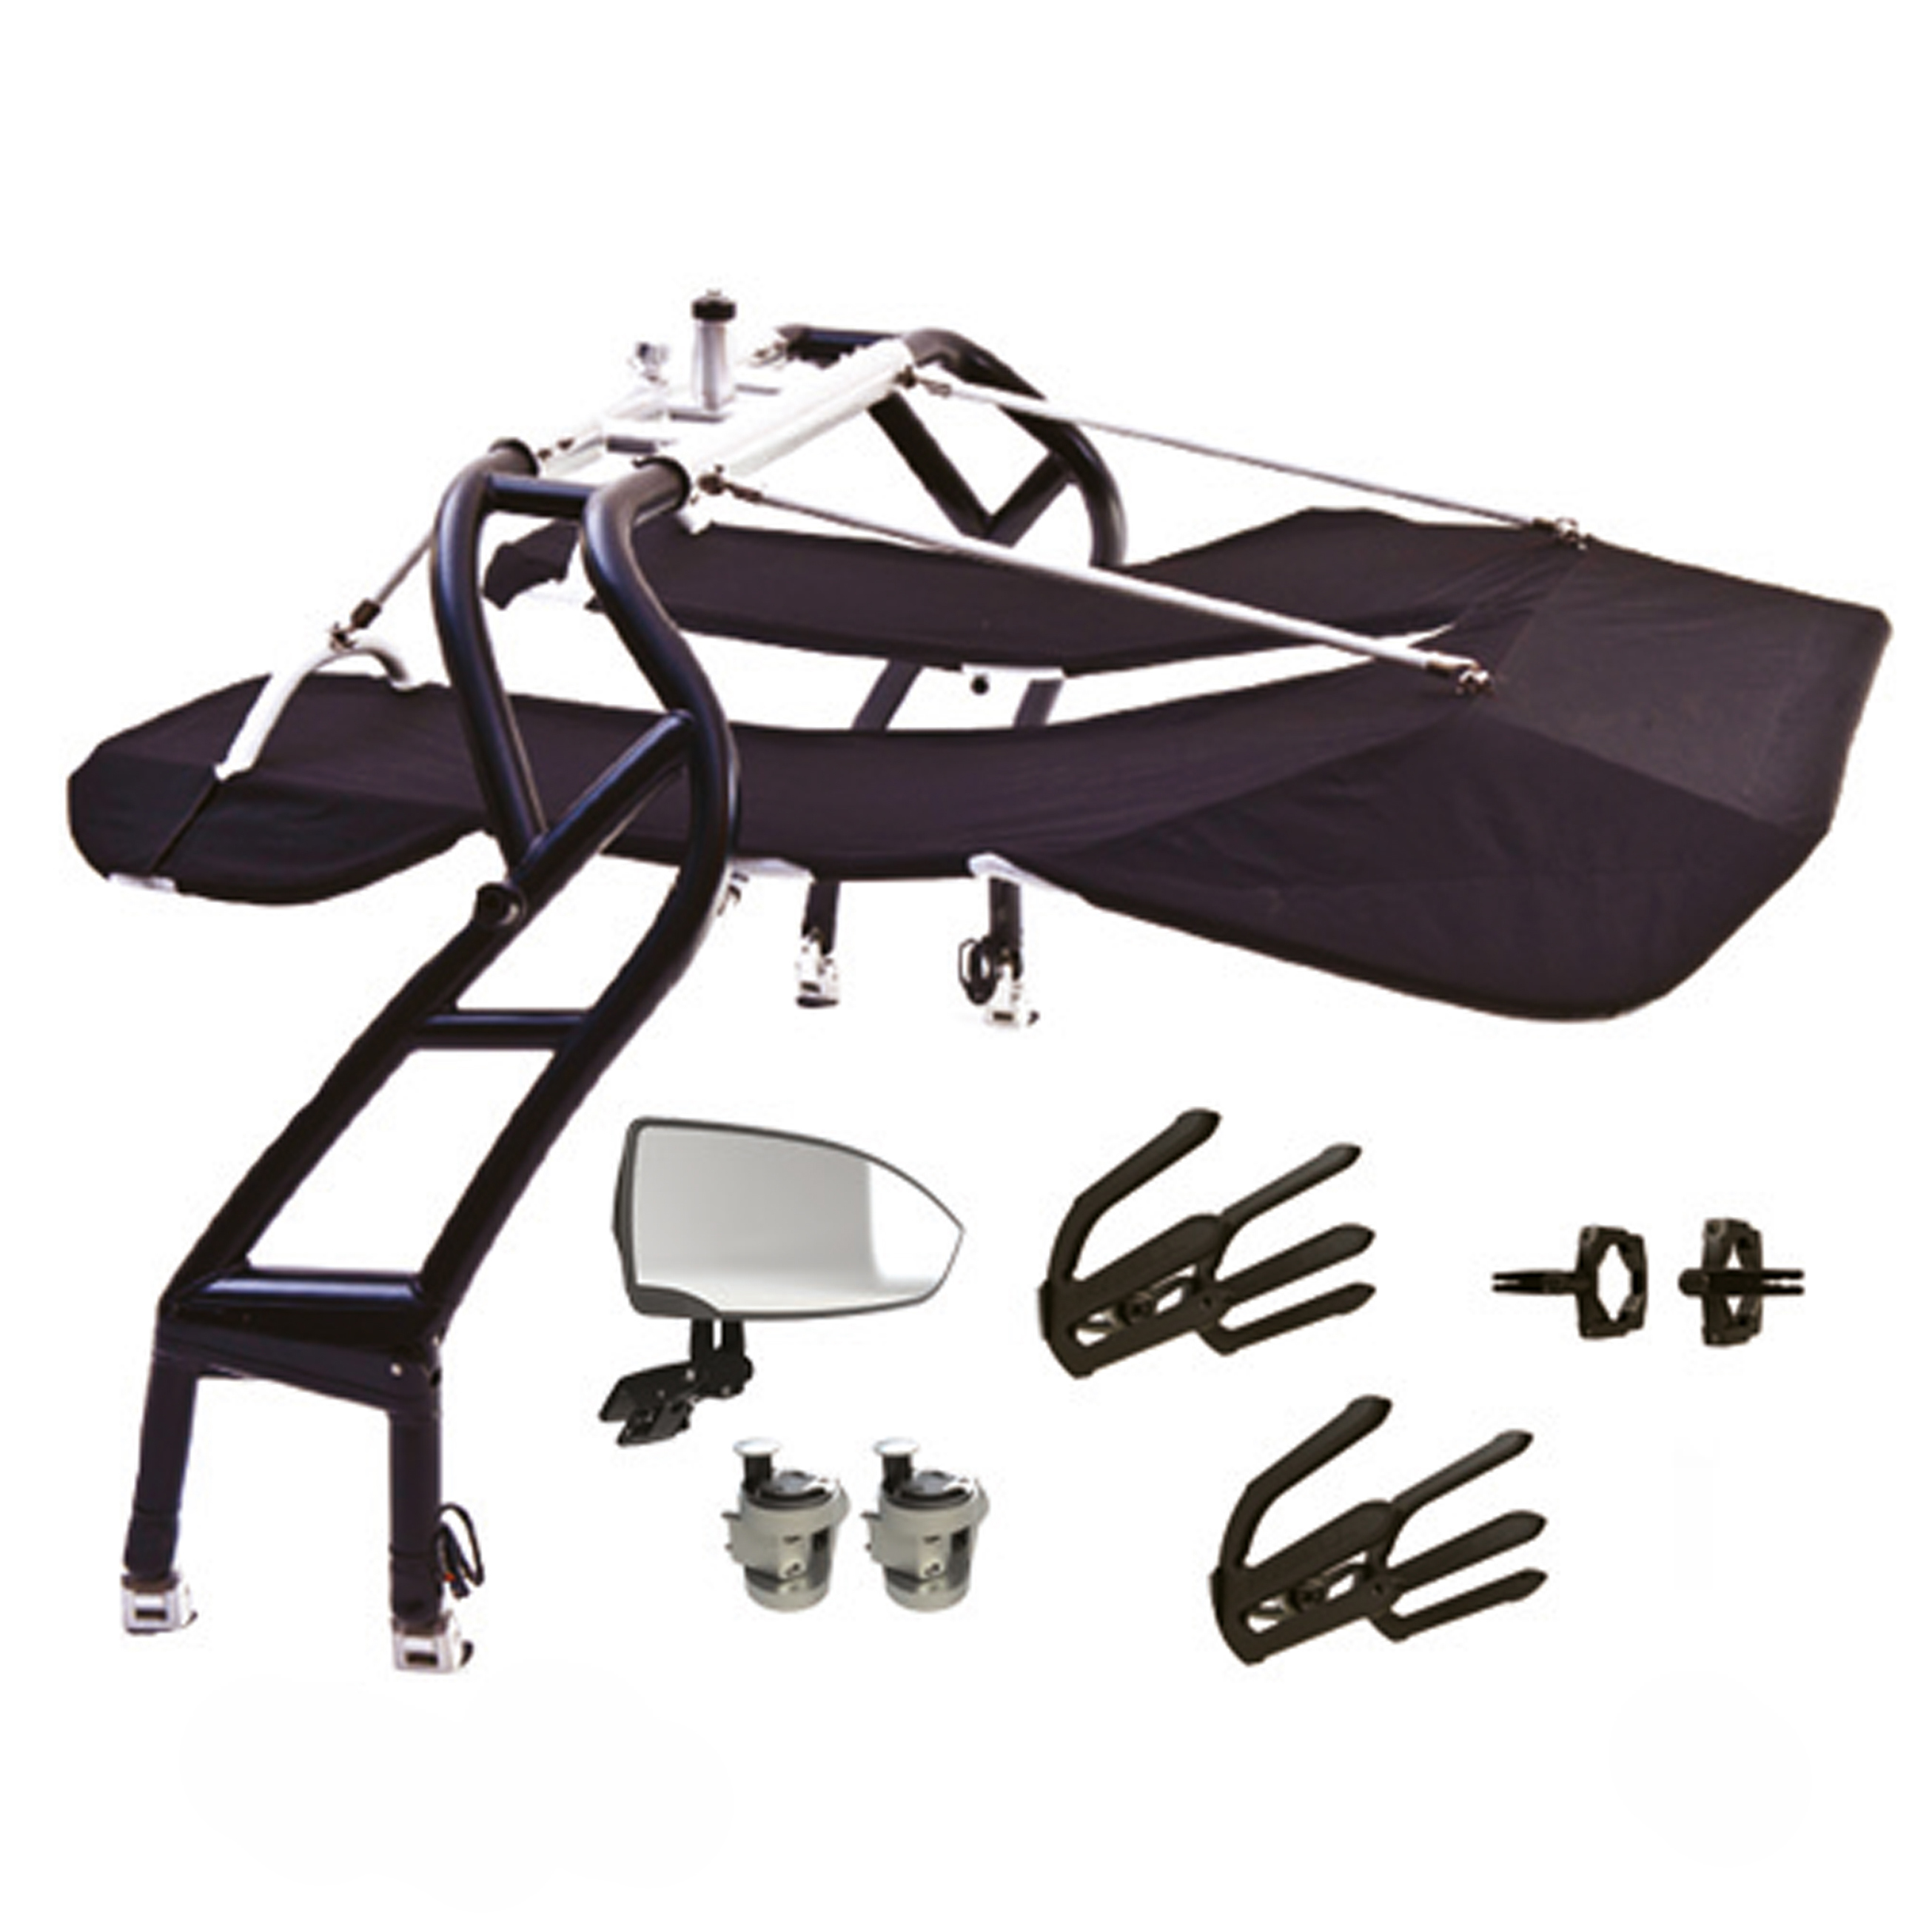 AVIATOR GOLD WAKEBOARD TOWER PACKAGE - WHITE ROSWELL 2018